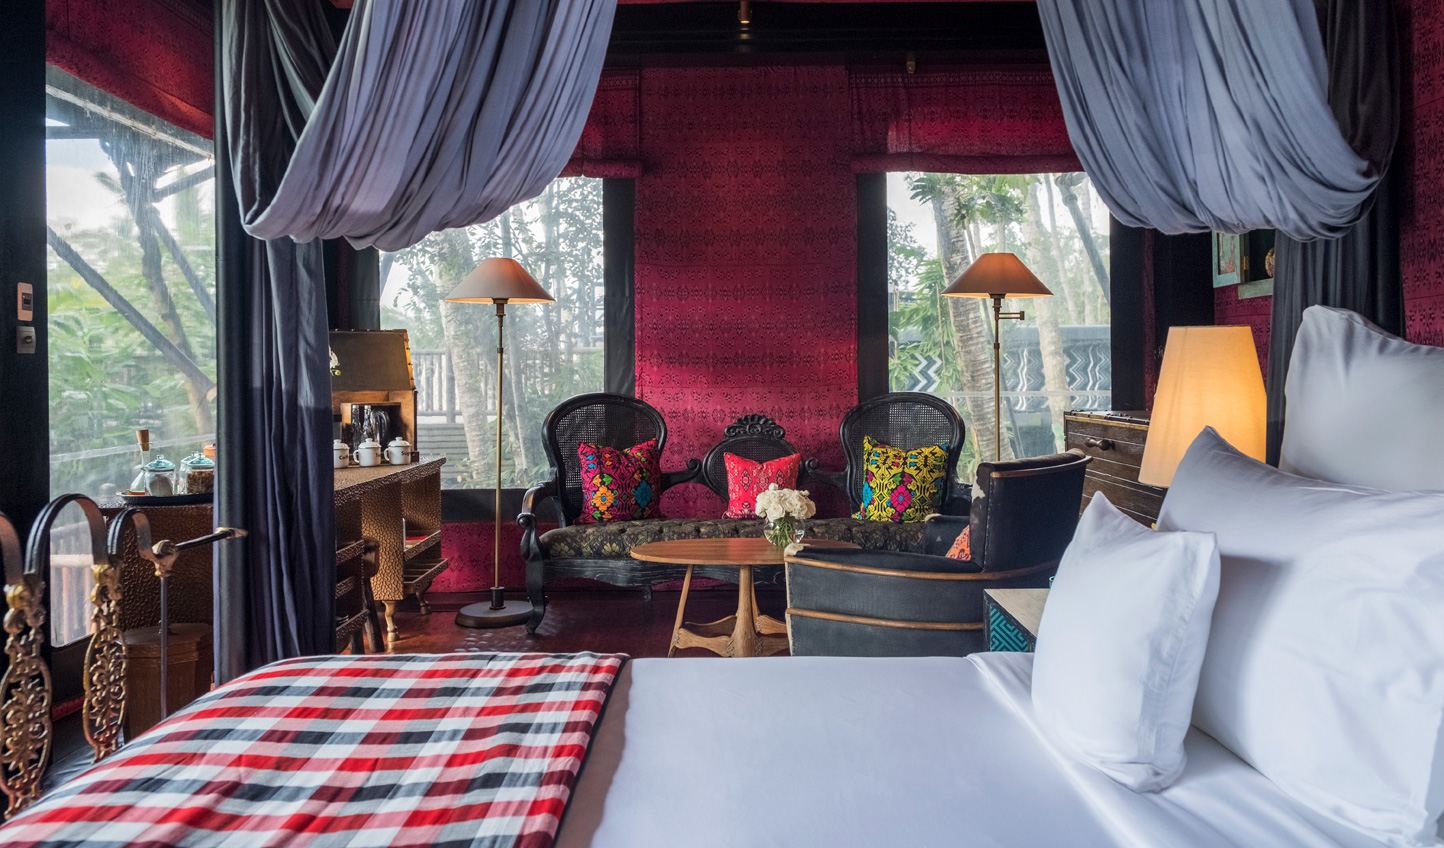 Step back in time to the splendour of pioneering explorers, with a few luxurious touches thrown in